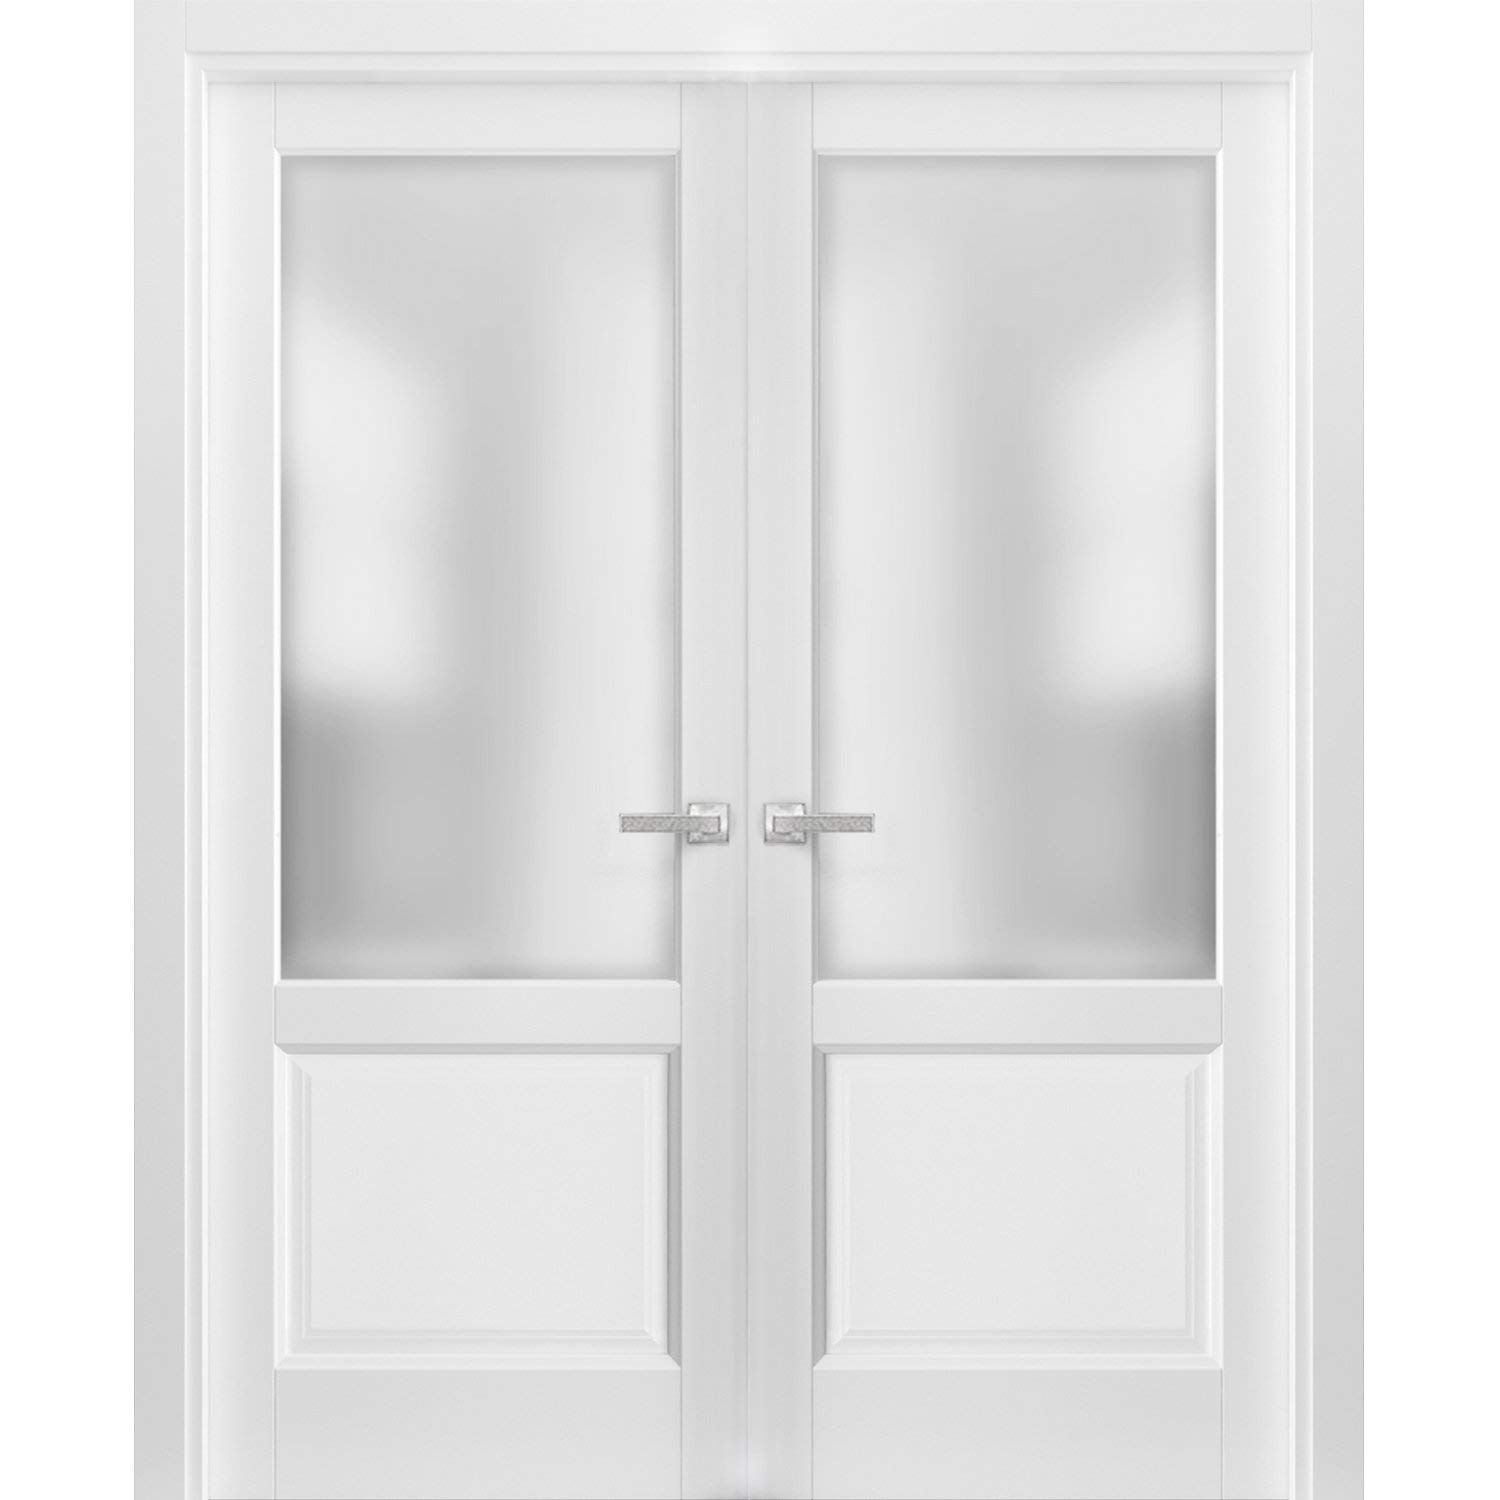 French Double Panel Lite Doors 60 x 84 with Hardware Pre-Hung Panel Frame Trims Lucia 22 Matte White with Frosted Opaque Glass Bathroom Bedroom Interior Sturdy Door